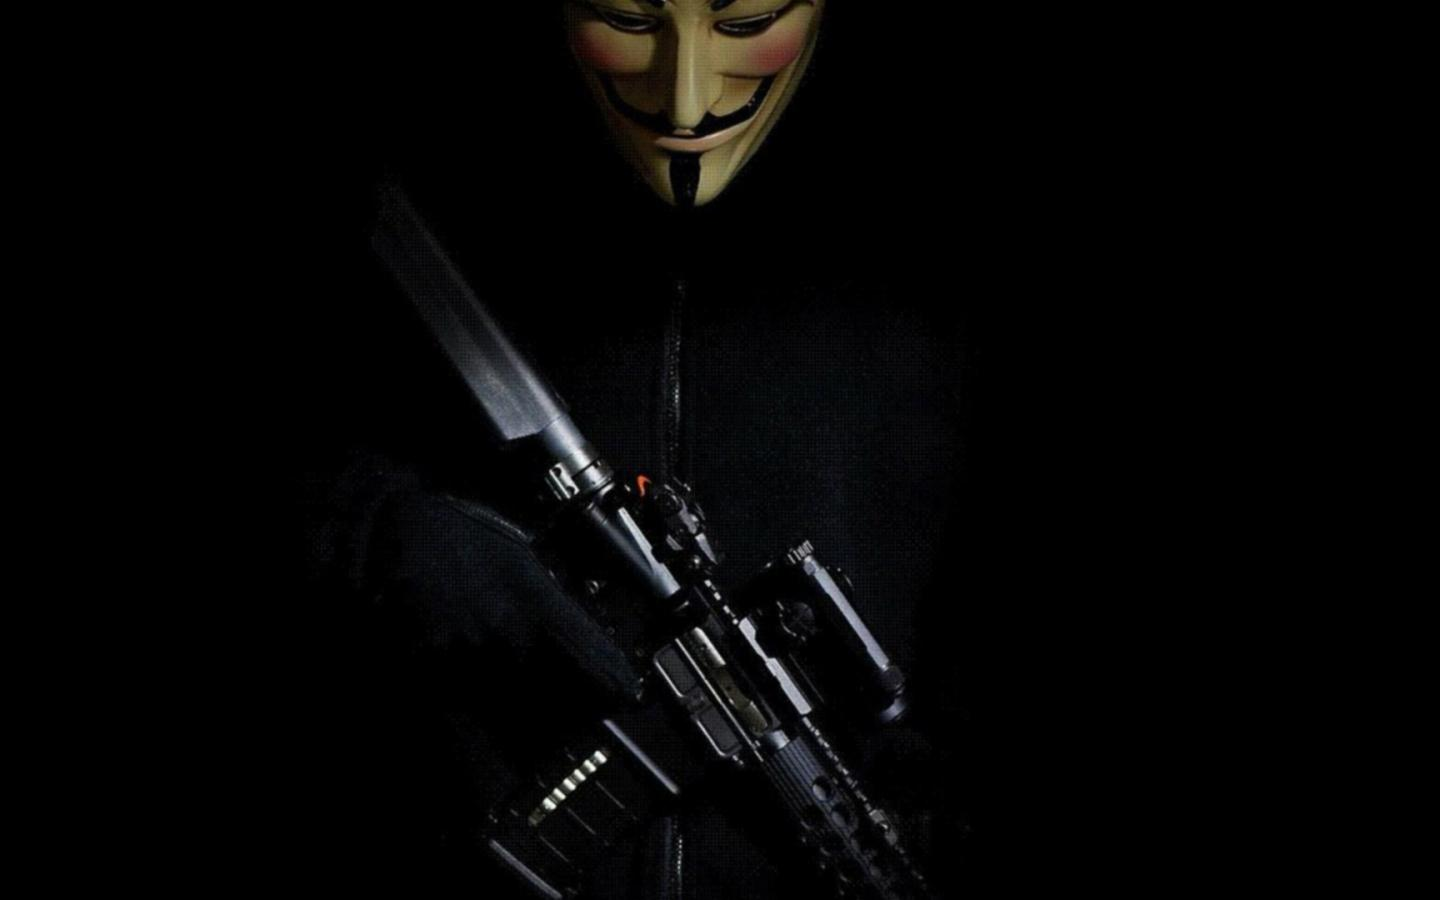 Hacker Wallpaper Hd 1366x768 Anonymous Mask Picture With Weapon For Wallpaper Hd